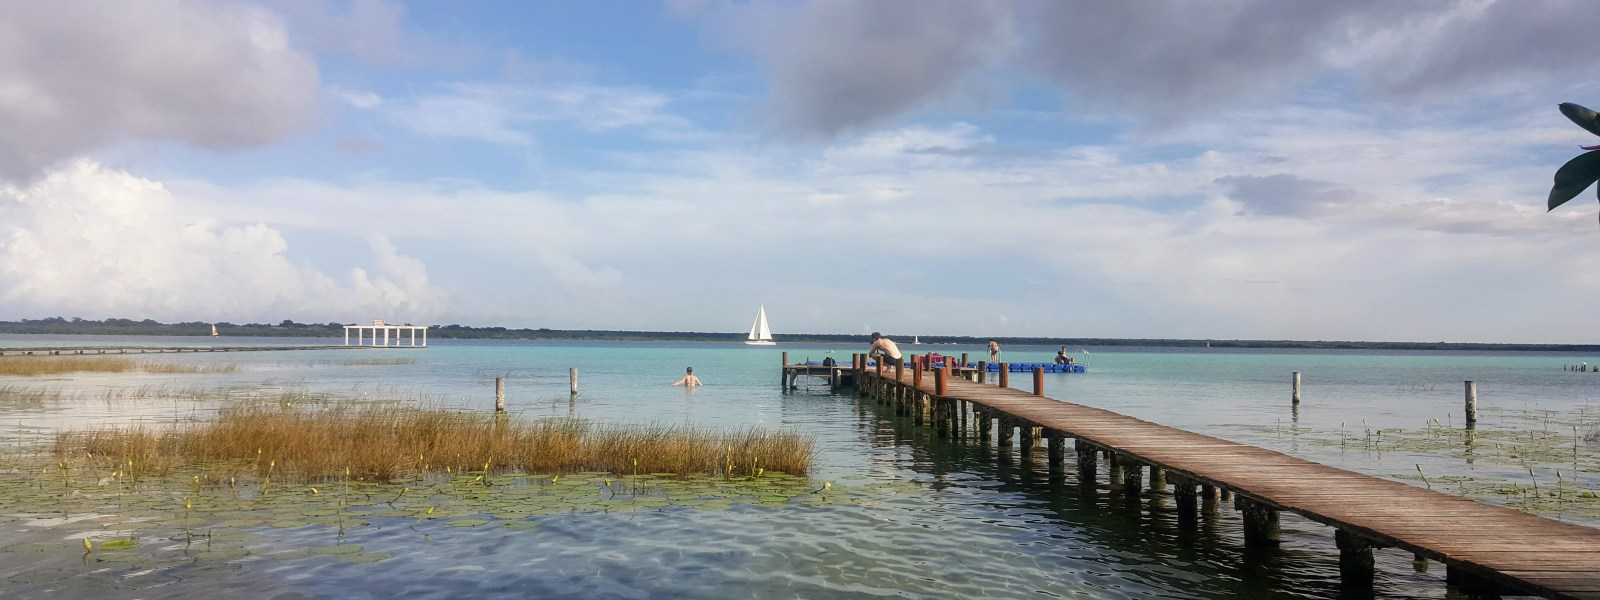 Bacalar and the Lagoon of Seven Colours